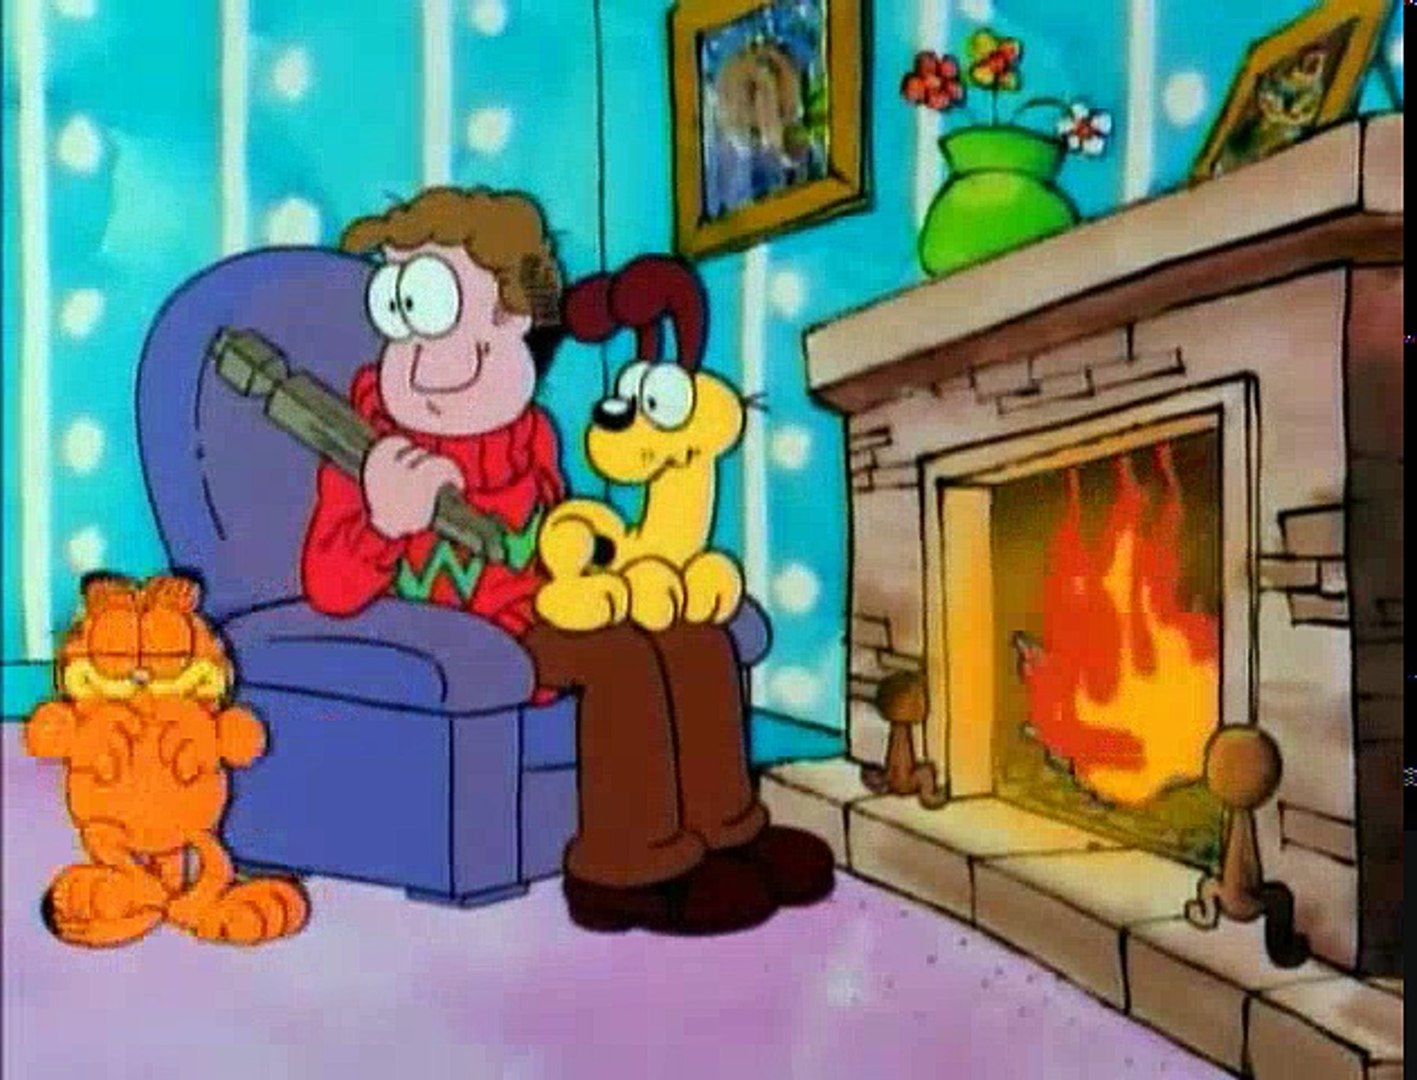 Garfield and Friends S02E01 Pest of a Guest